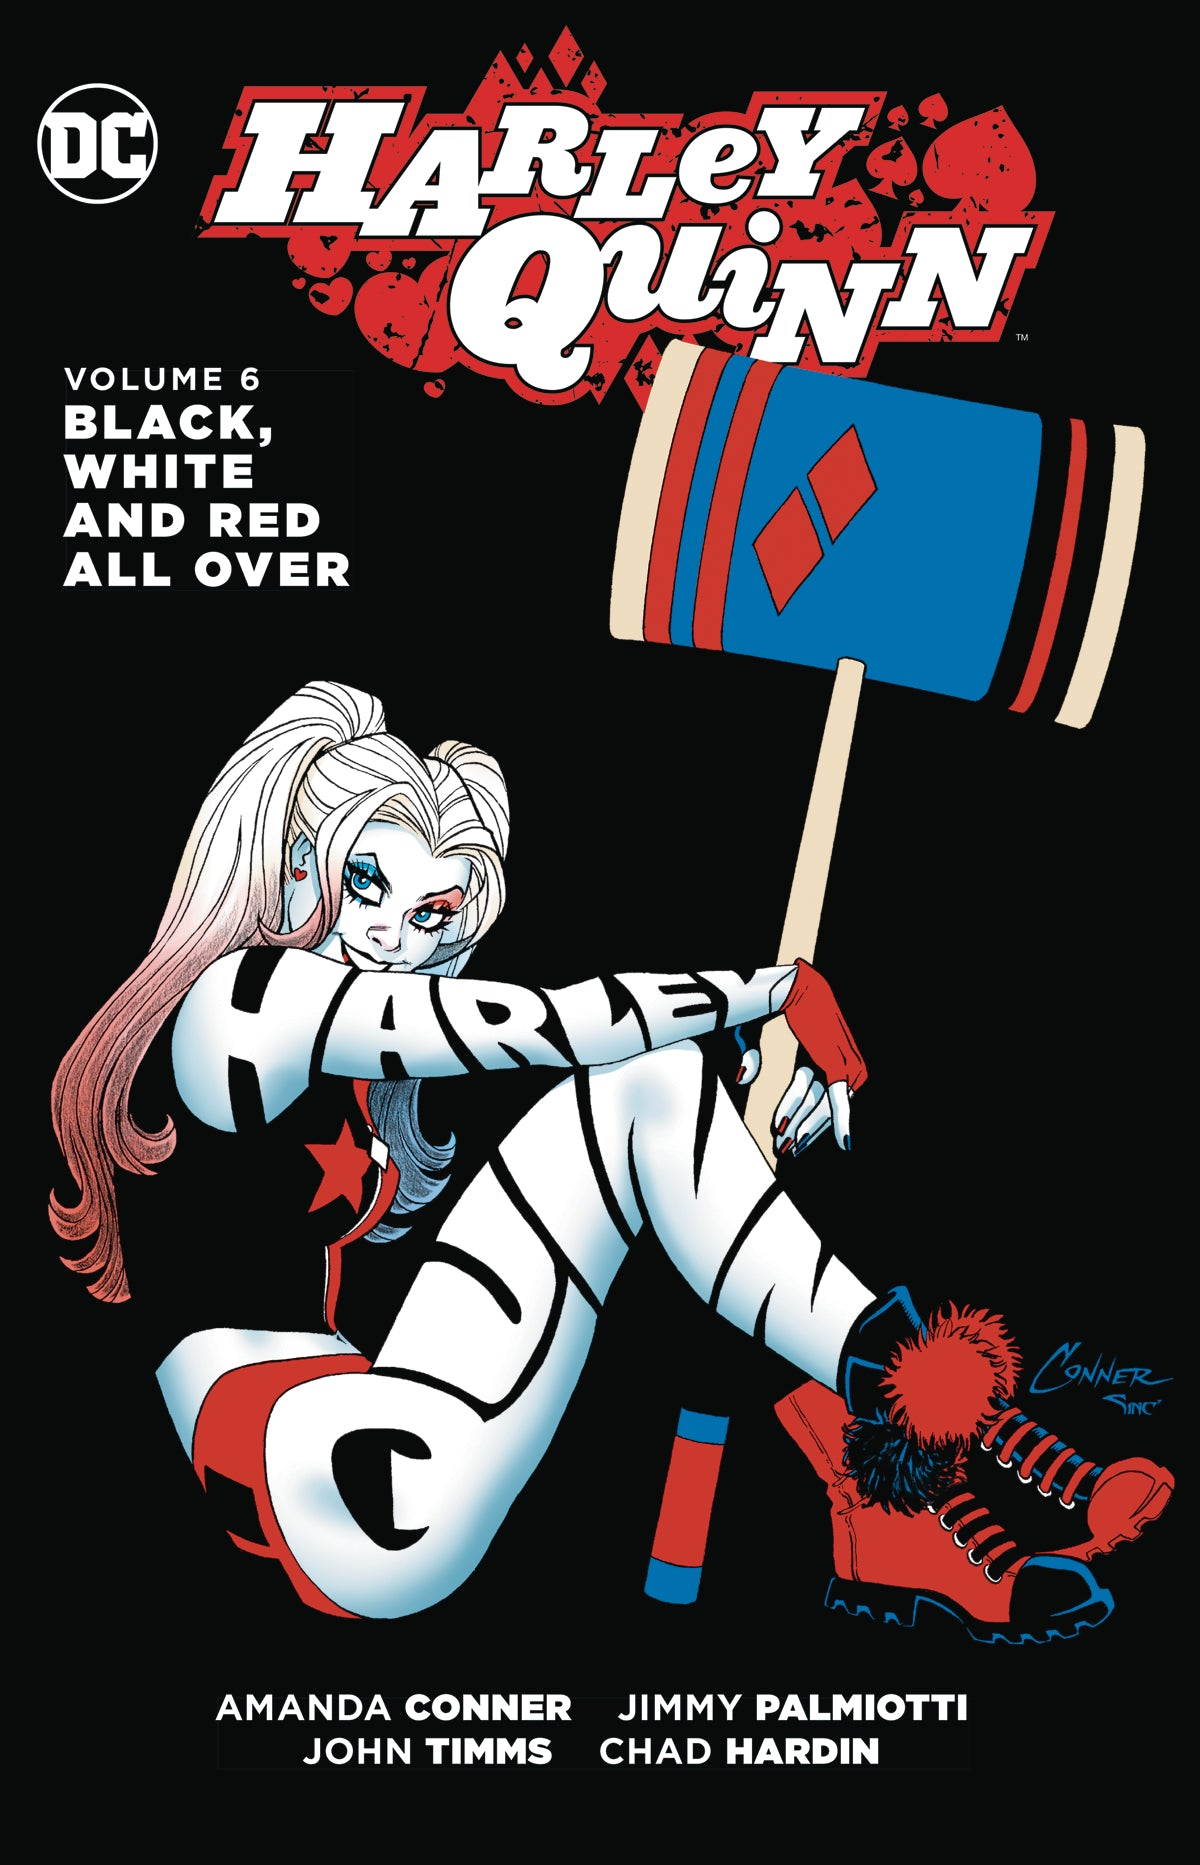 HARLEY QUINN TP VOL 06 BLACK WHITE & RED ALL OVER | Game Master's Emporium (The New GME)